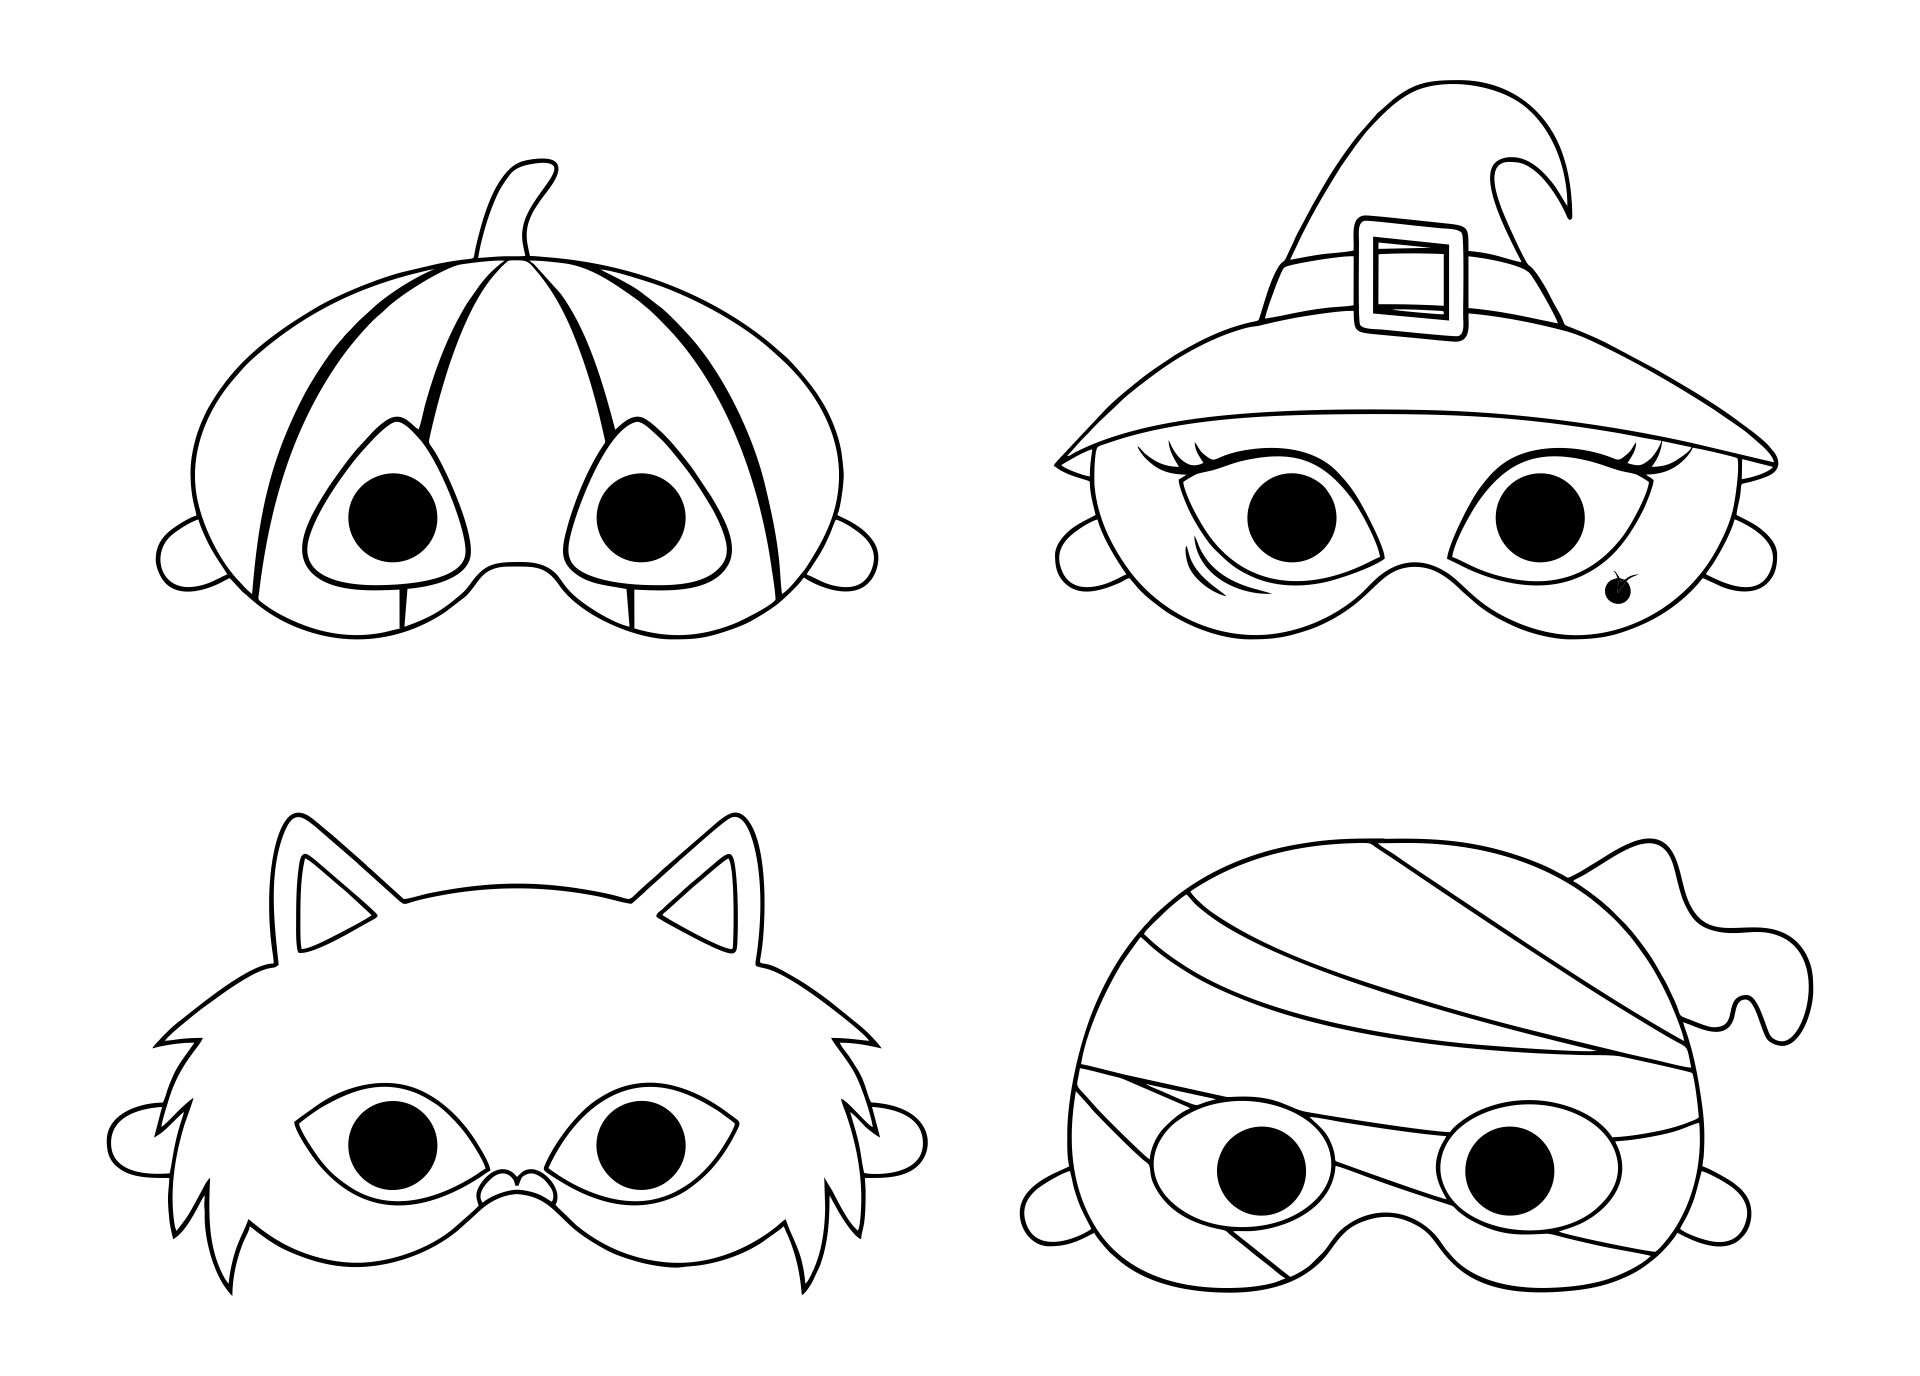 Printable Halloween Arts and Crafts for Kids